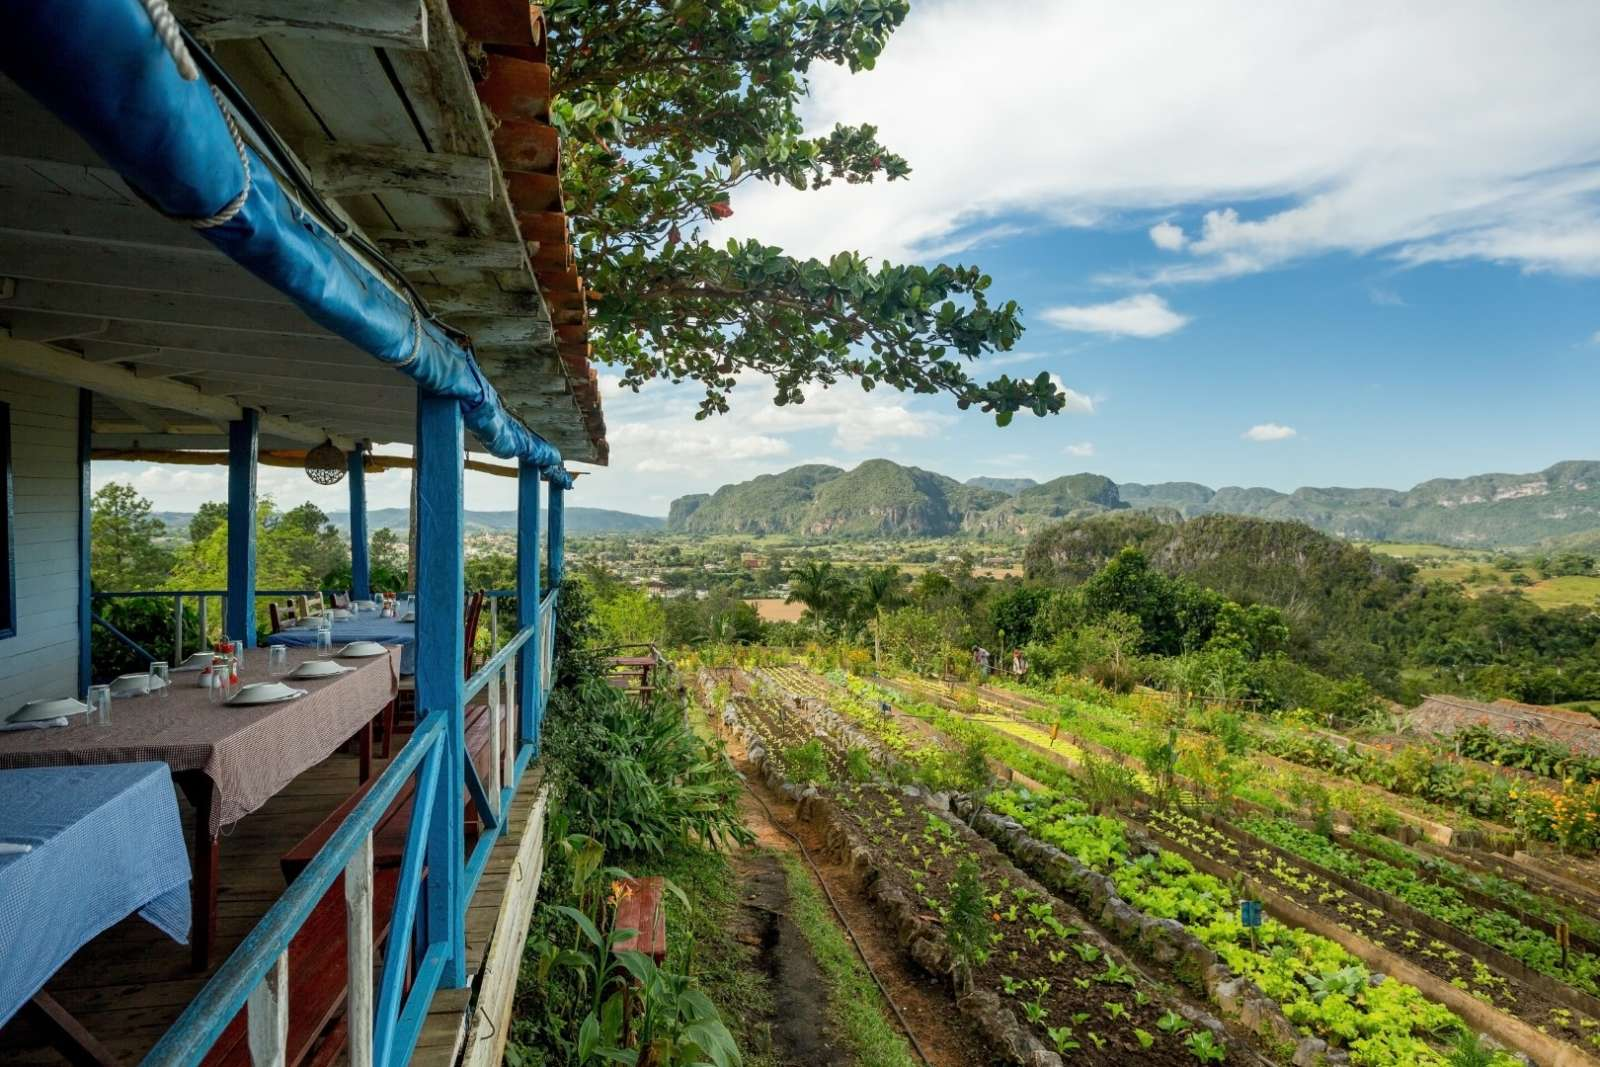 Organic farm and restaurant with a view in Vinales, Cuba